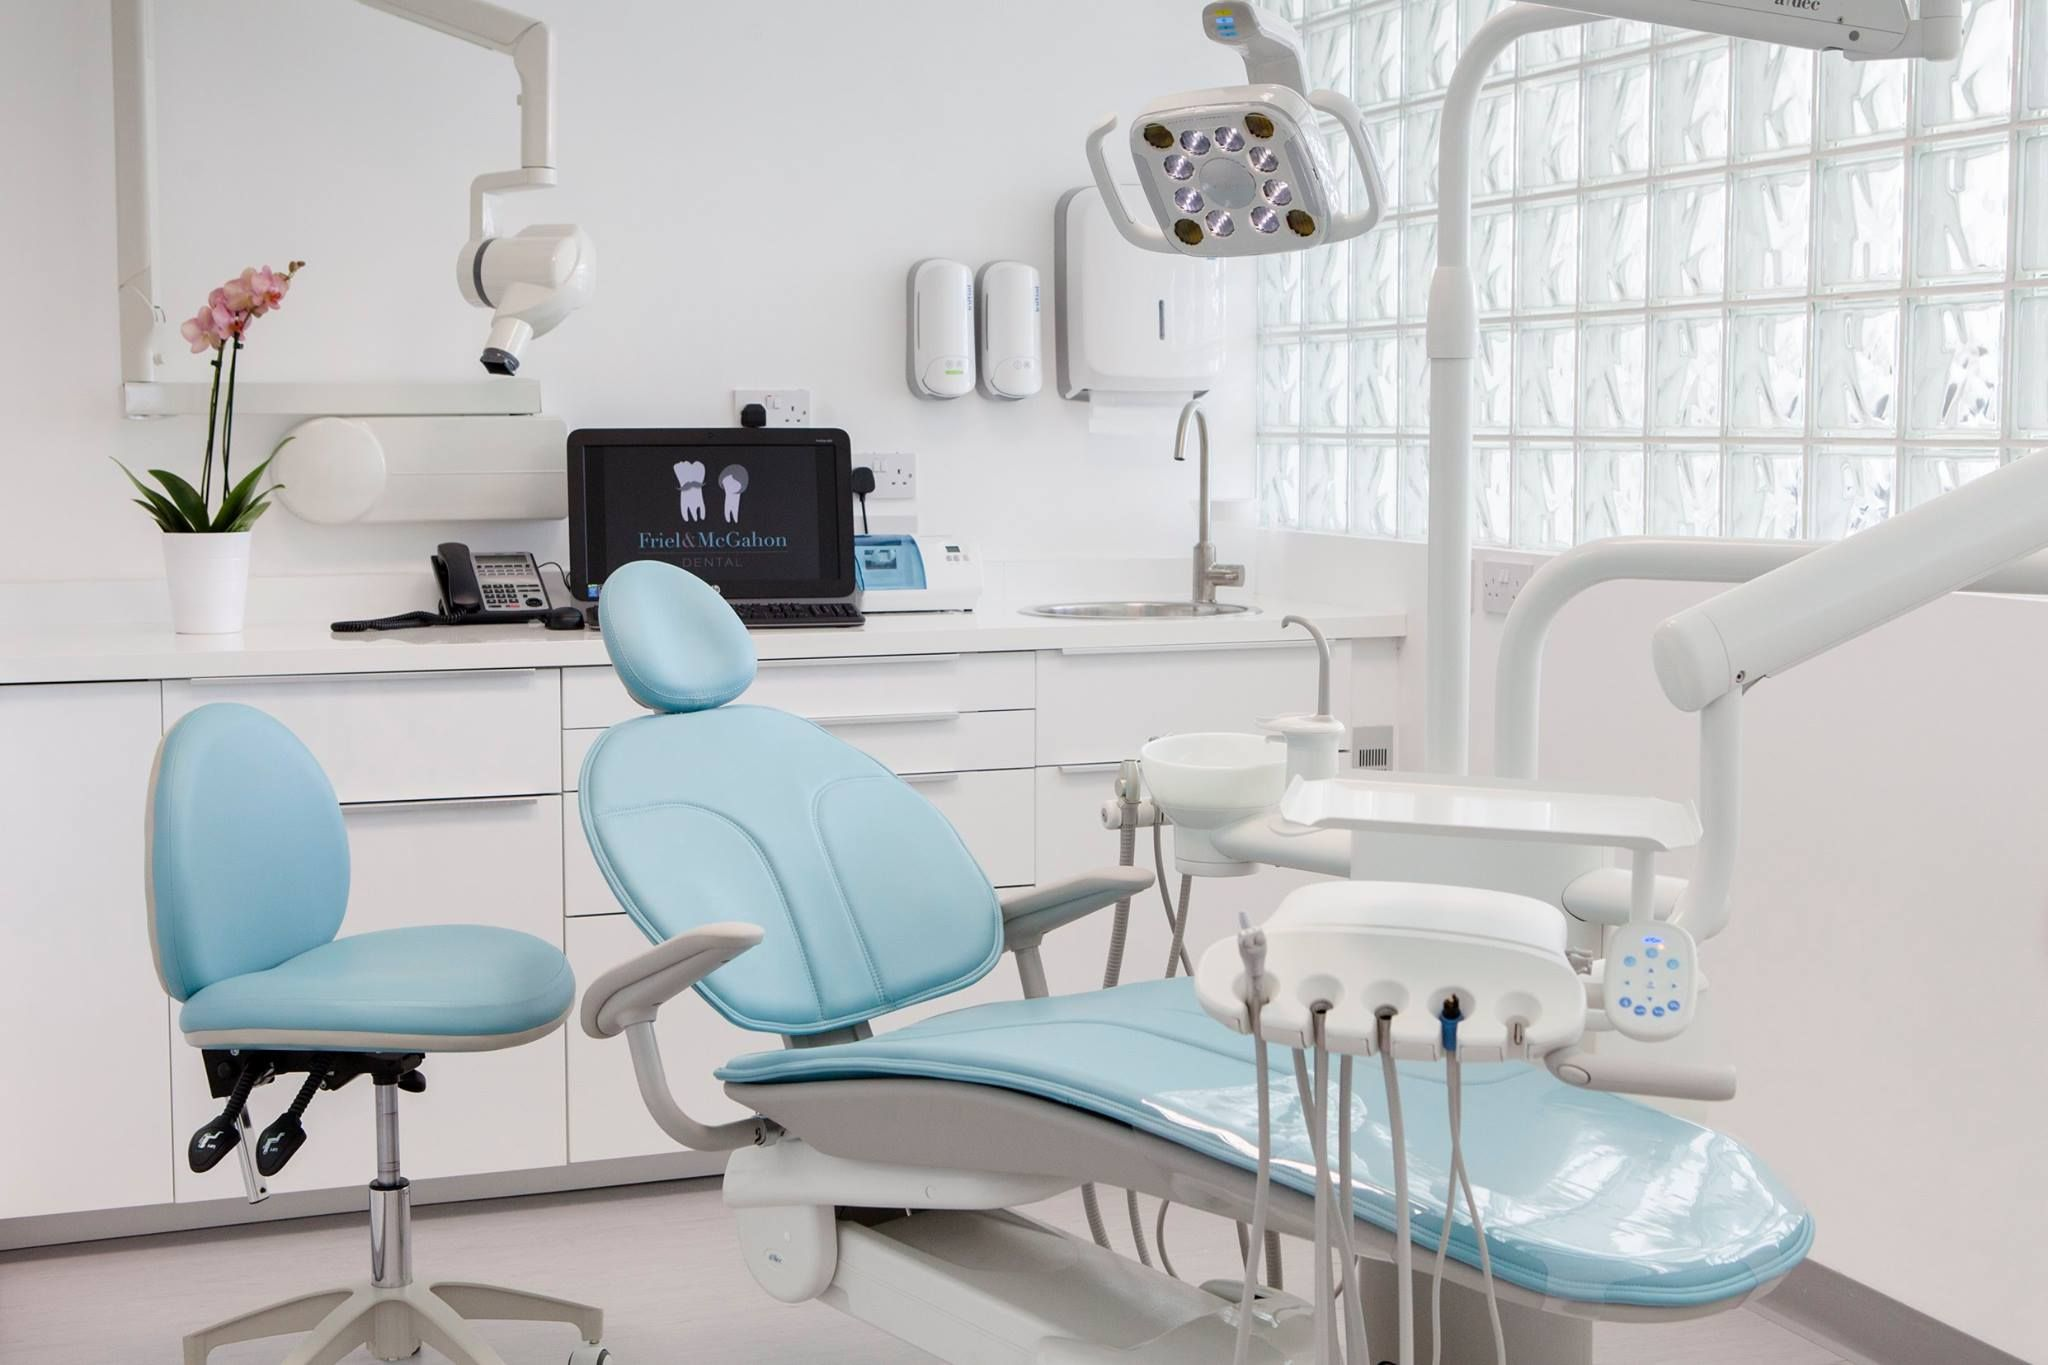 A dec 300 dental chair with Cyan sewn upholstery A dec LED light